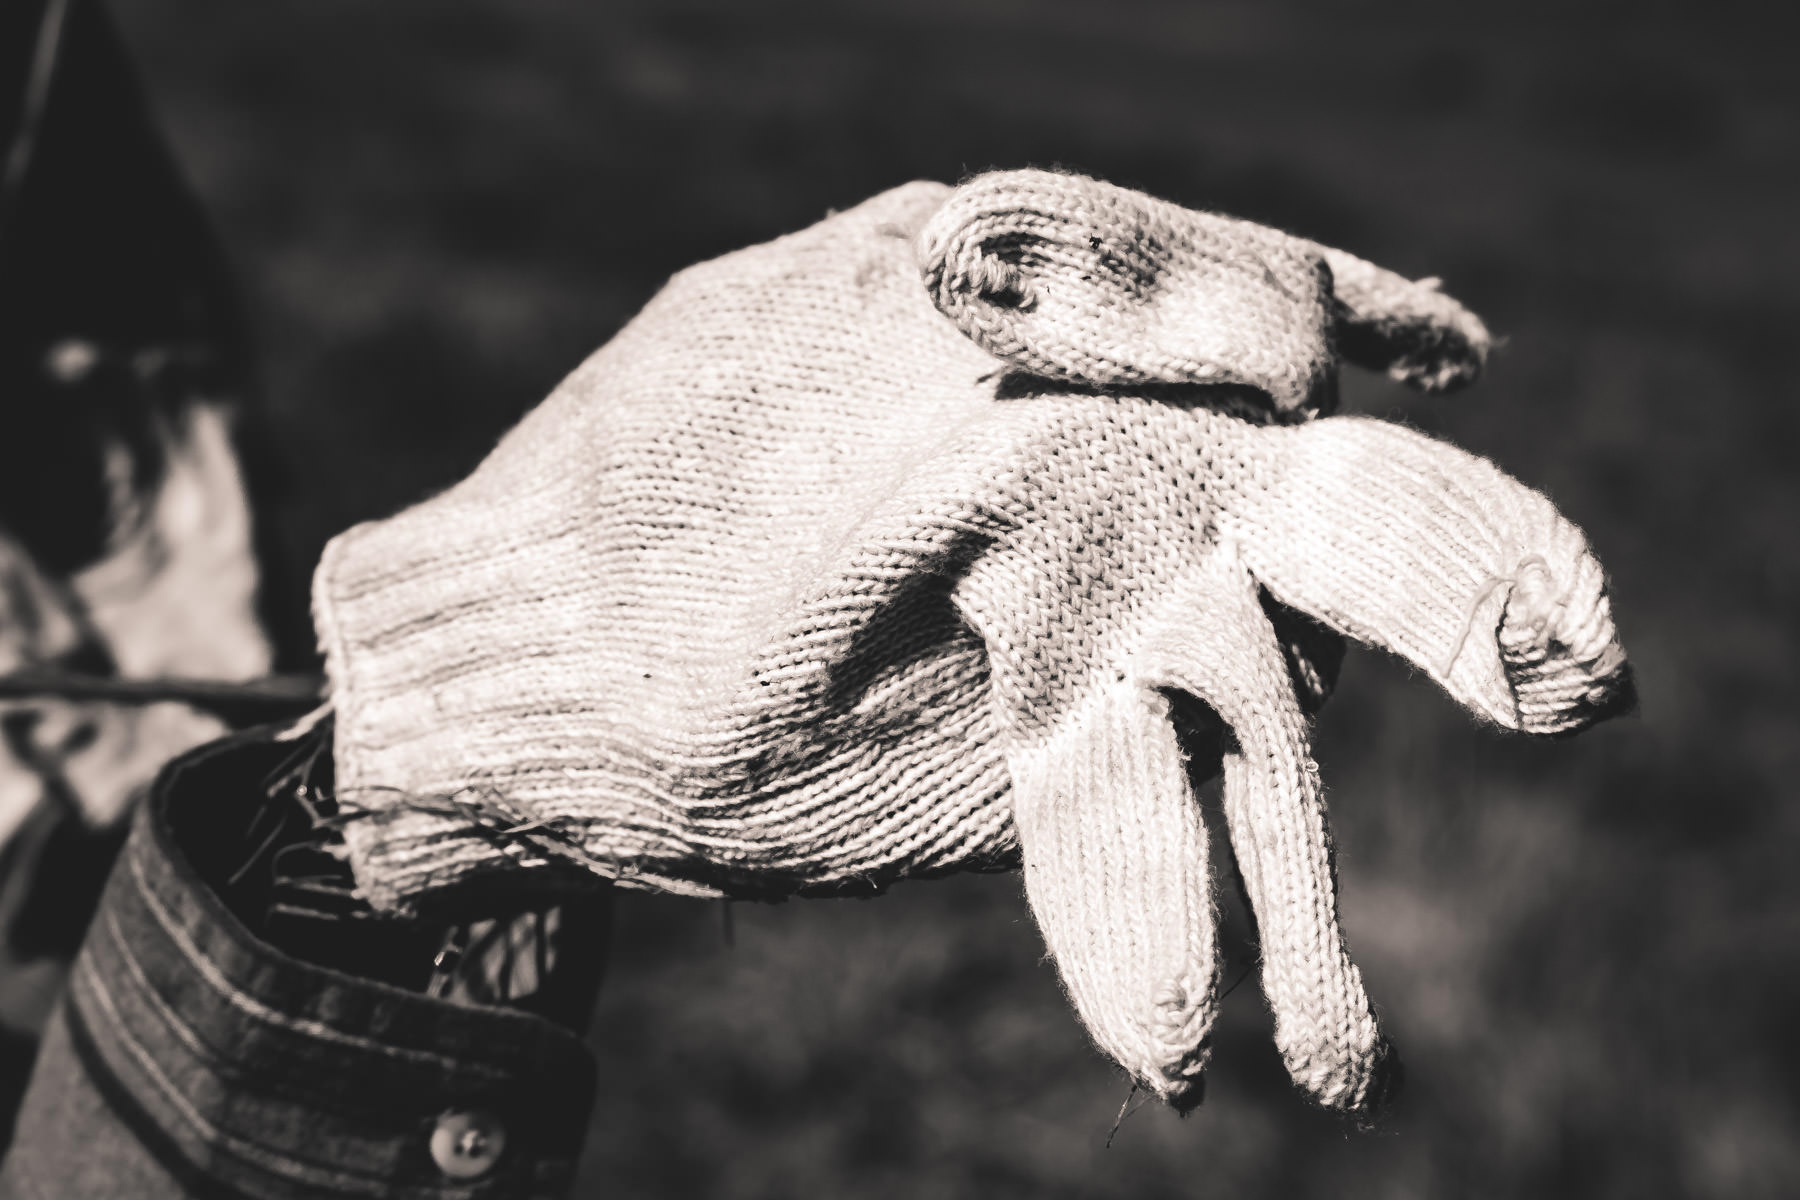 An old glove makes up the hand of a scarecrow at Moore Farms in Bullard, Texas.